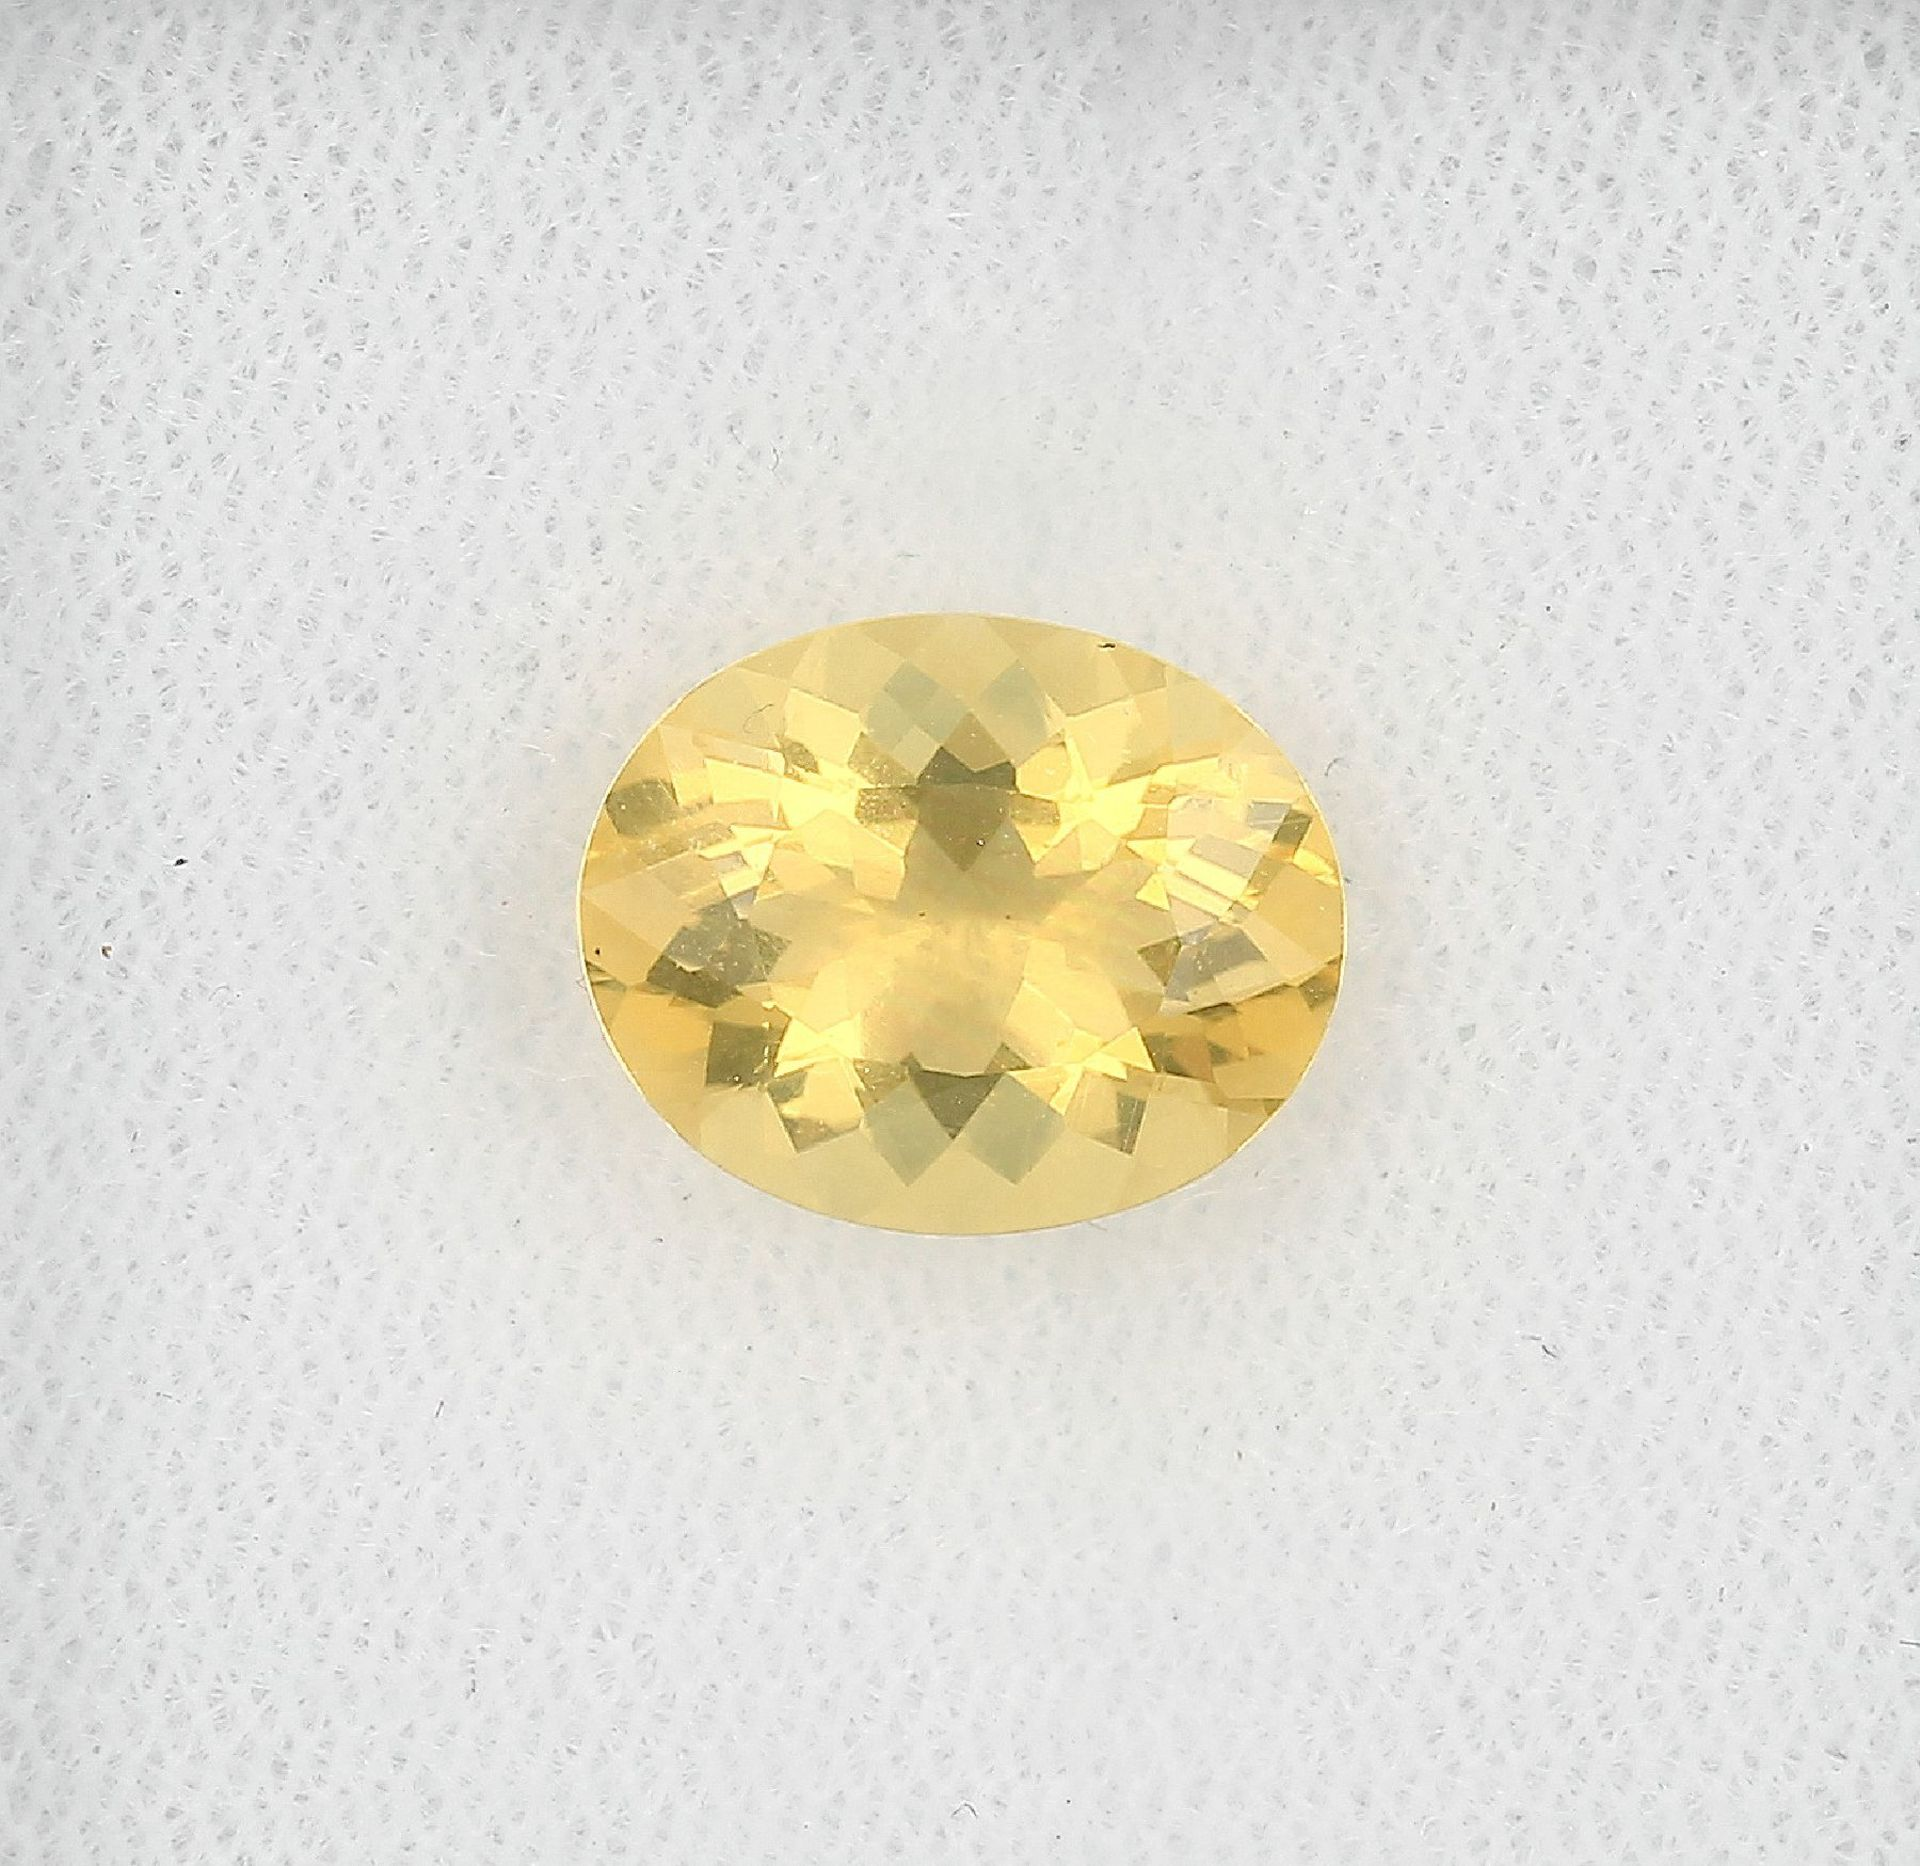 Los 30001 - Loser Opal, ca. 2.70 ct, oval facett., gelb Schätzpreis: 340, - EURLoose opal, approx. 2.70 ct ,